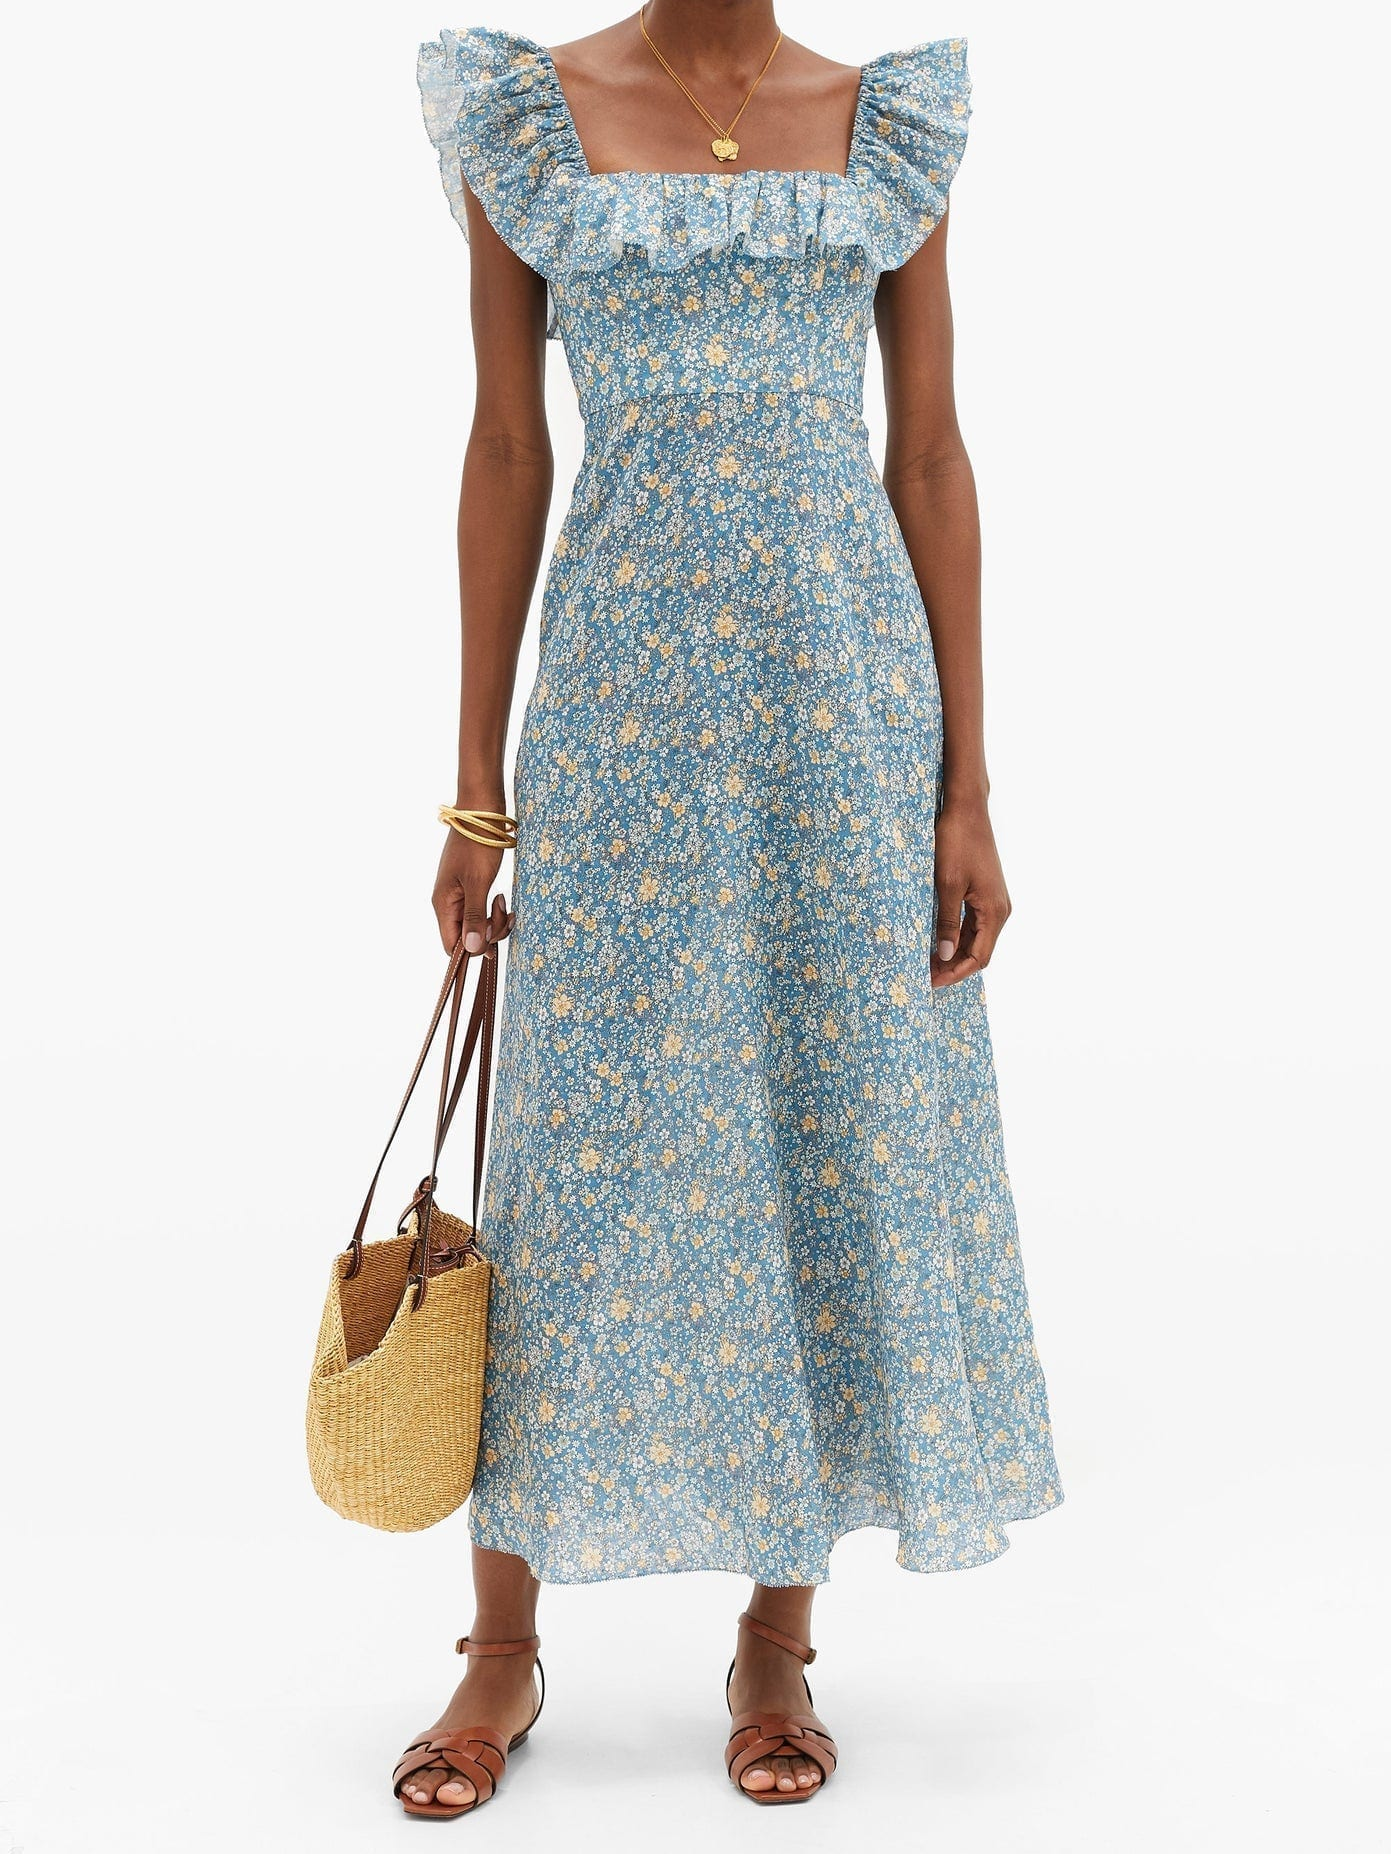 LOVE SHACK FANCY Norma Embroidered-cotton Maxi Dress, LOVE SHACK FANCY Spring Summer 2020 Dress, LOVE SHACK FANCY Dress, Spring Summer Dress